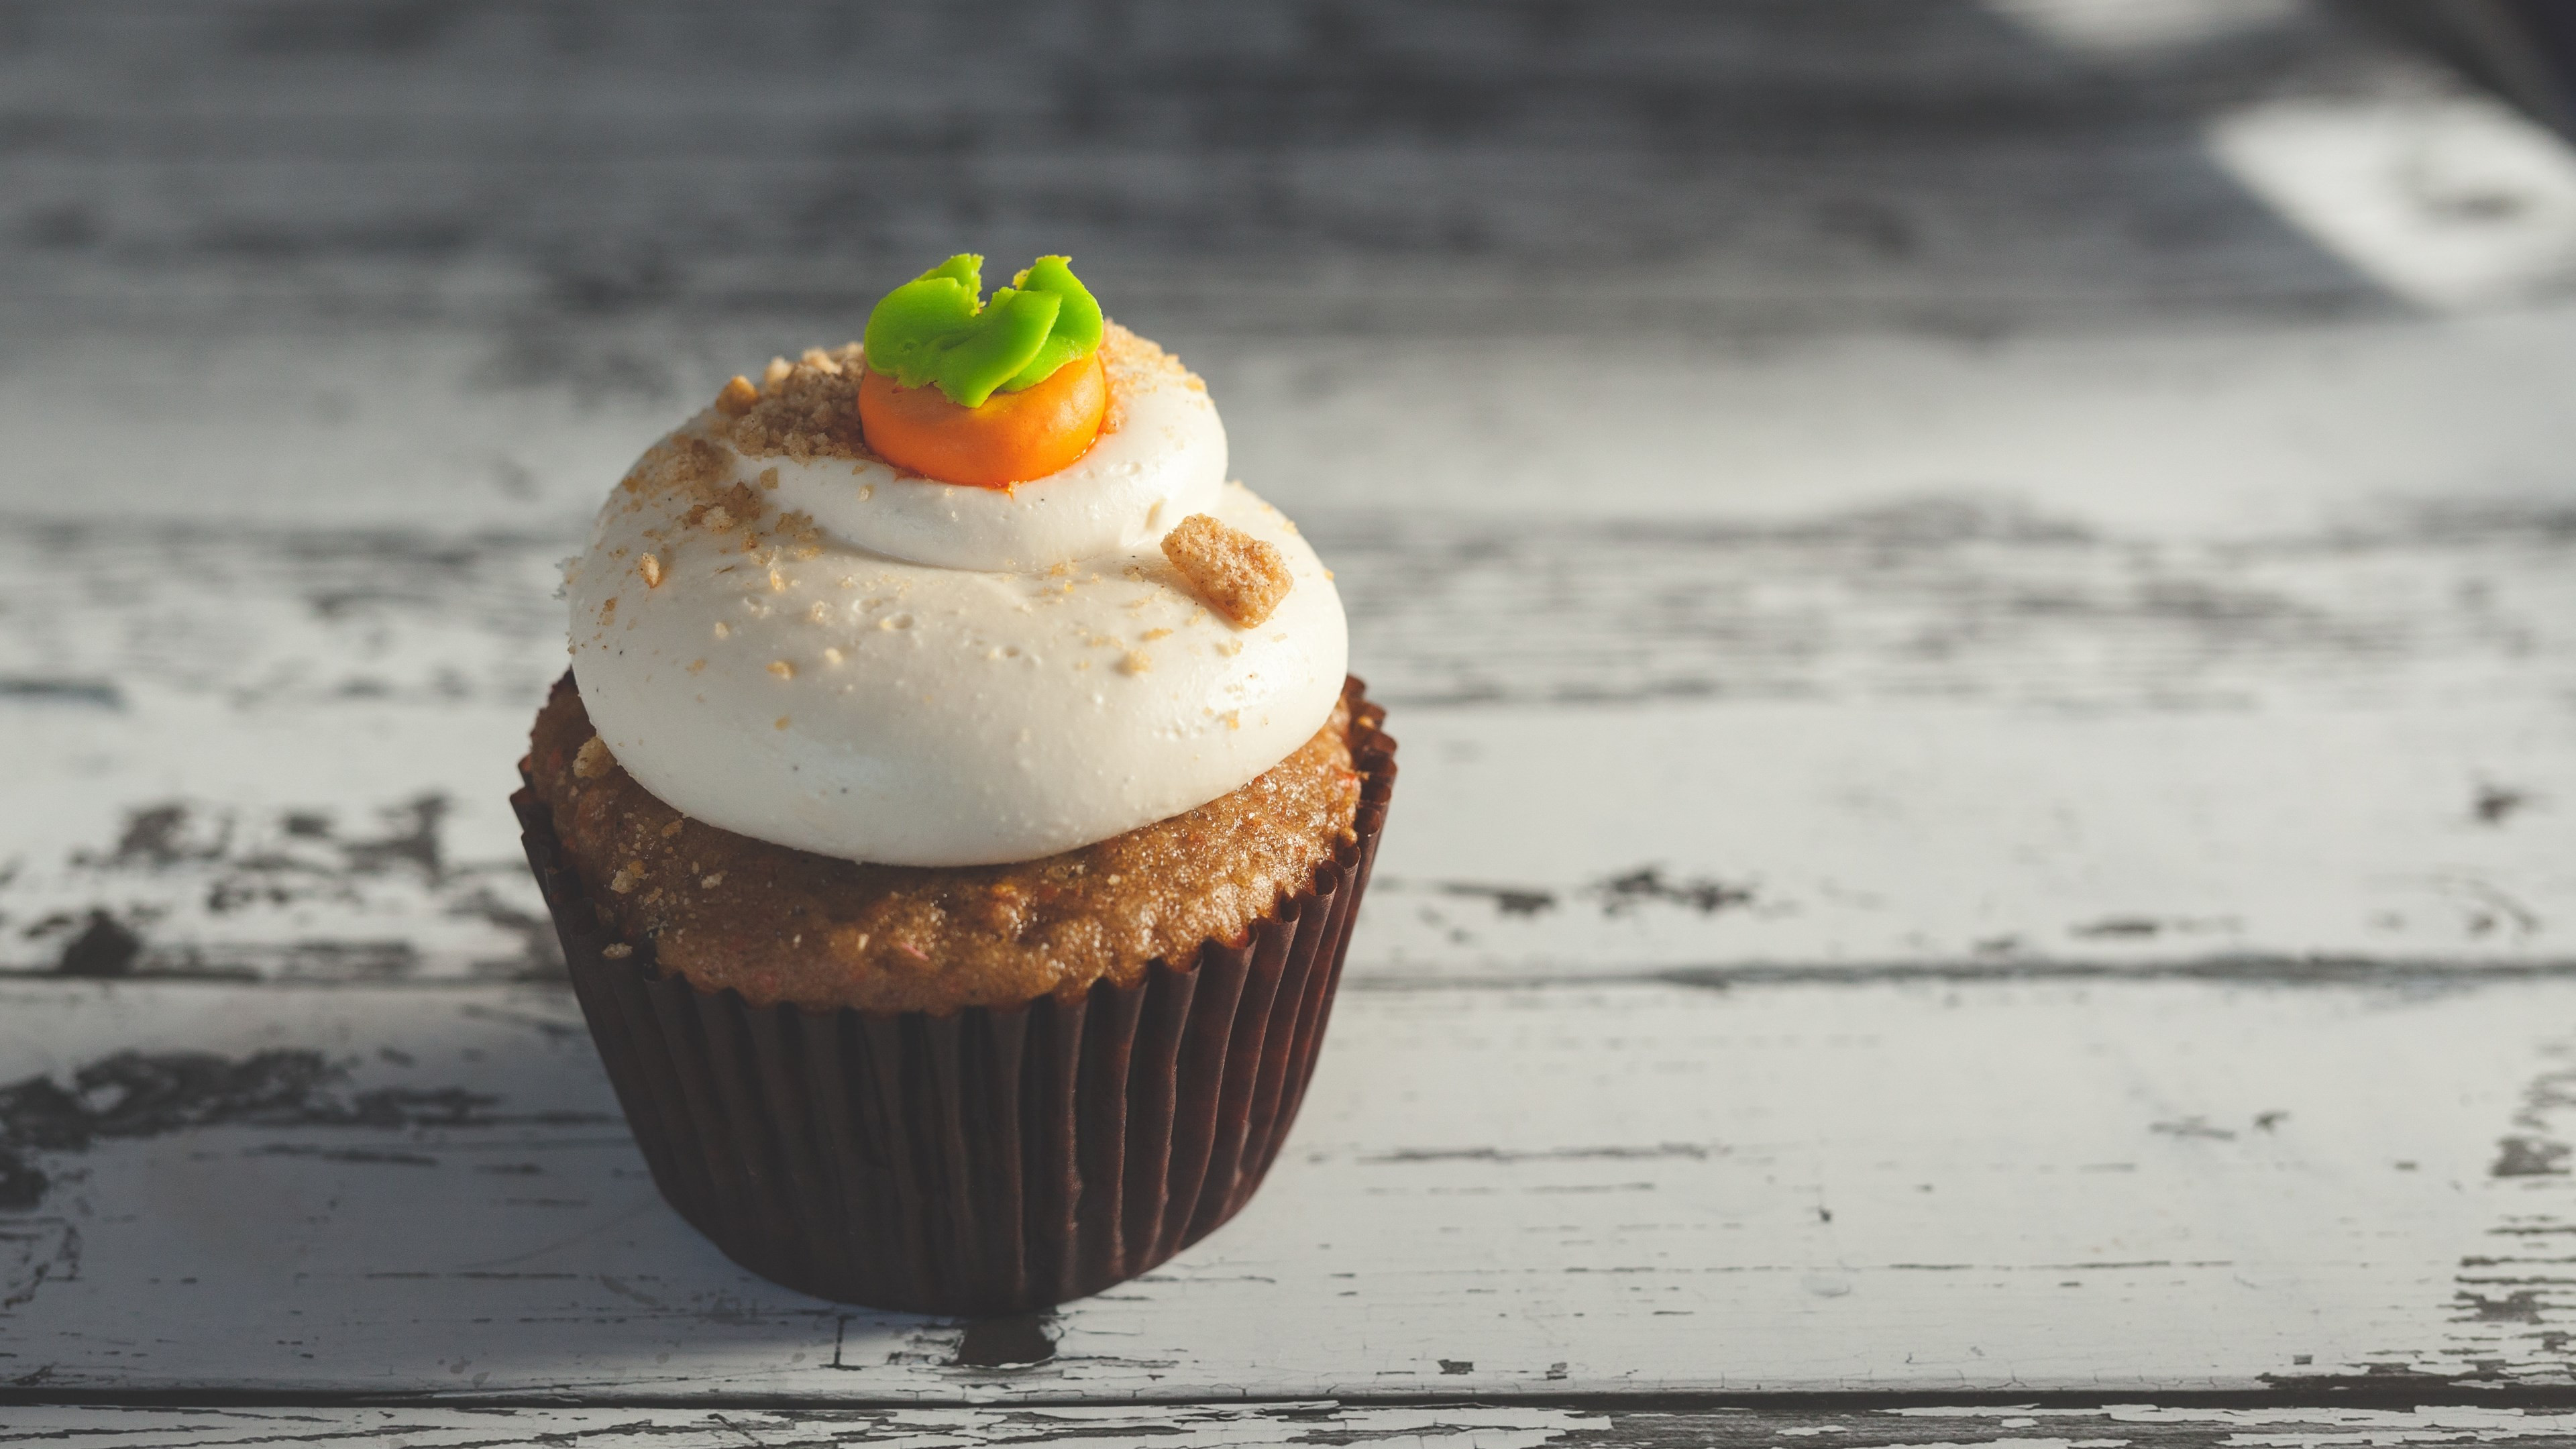 Muffin with cream wallpaper 3840x2160